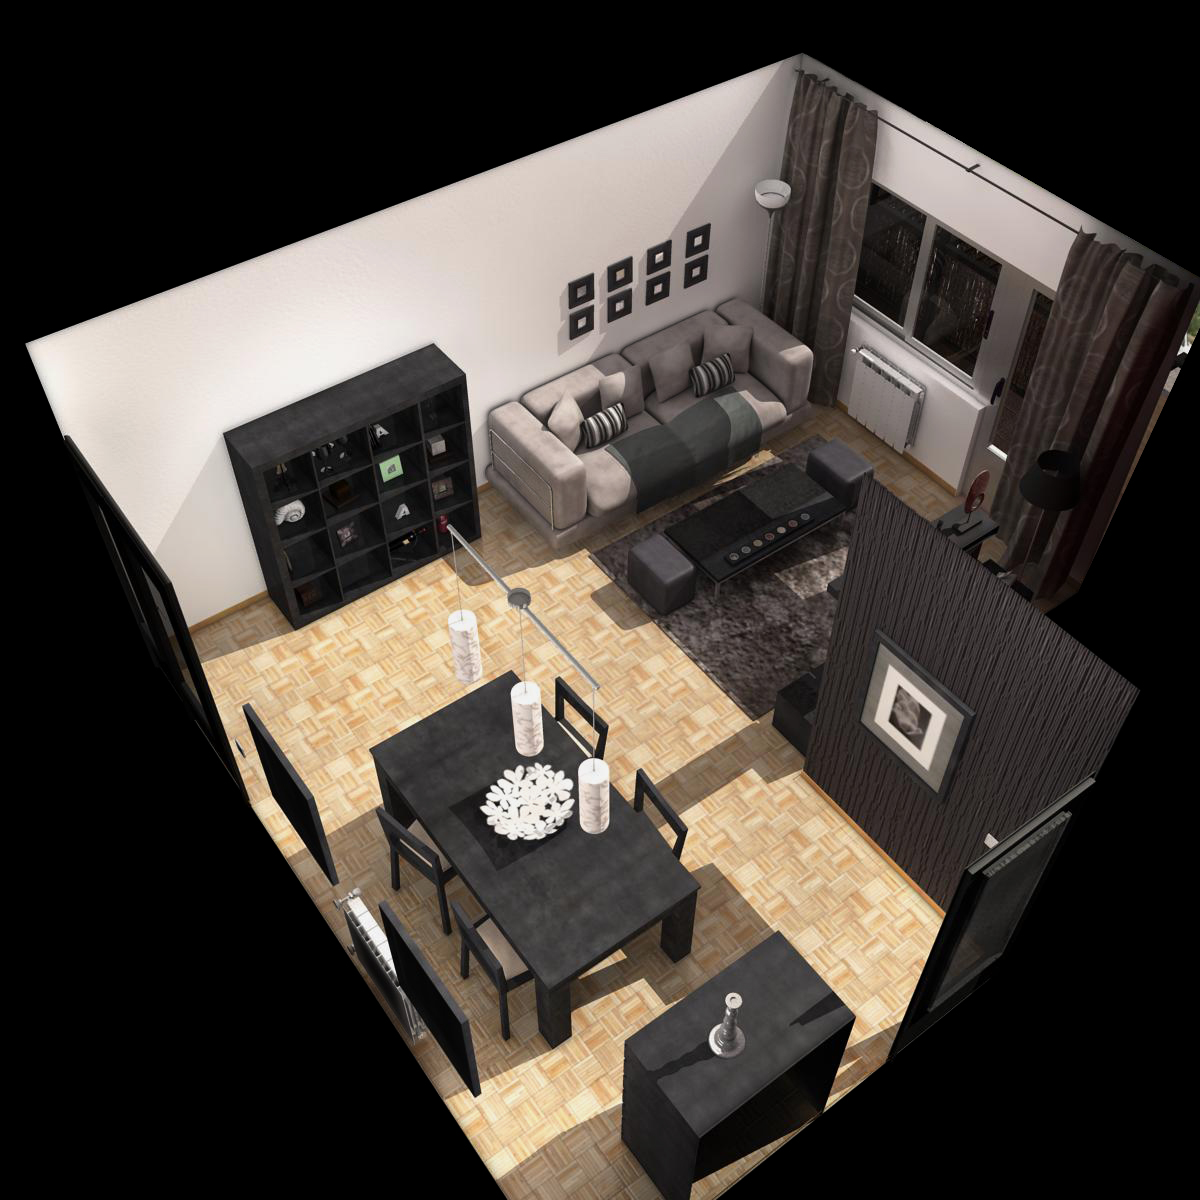 living room 3d model 3ds max fbx c4d ma mb obj 159614